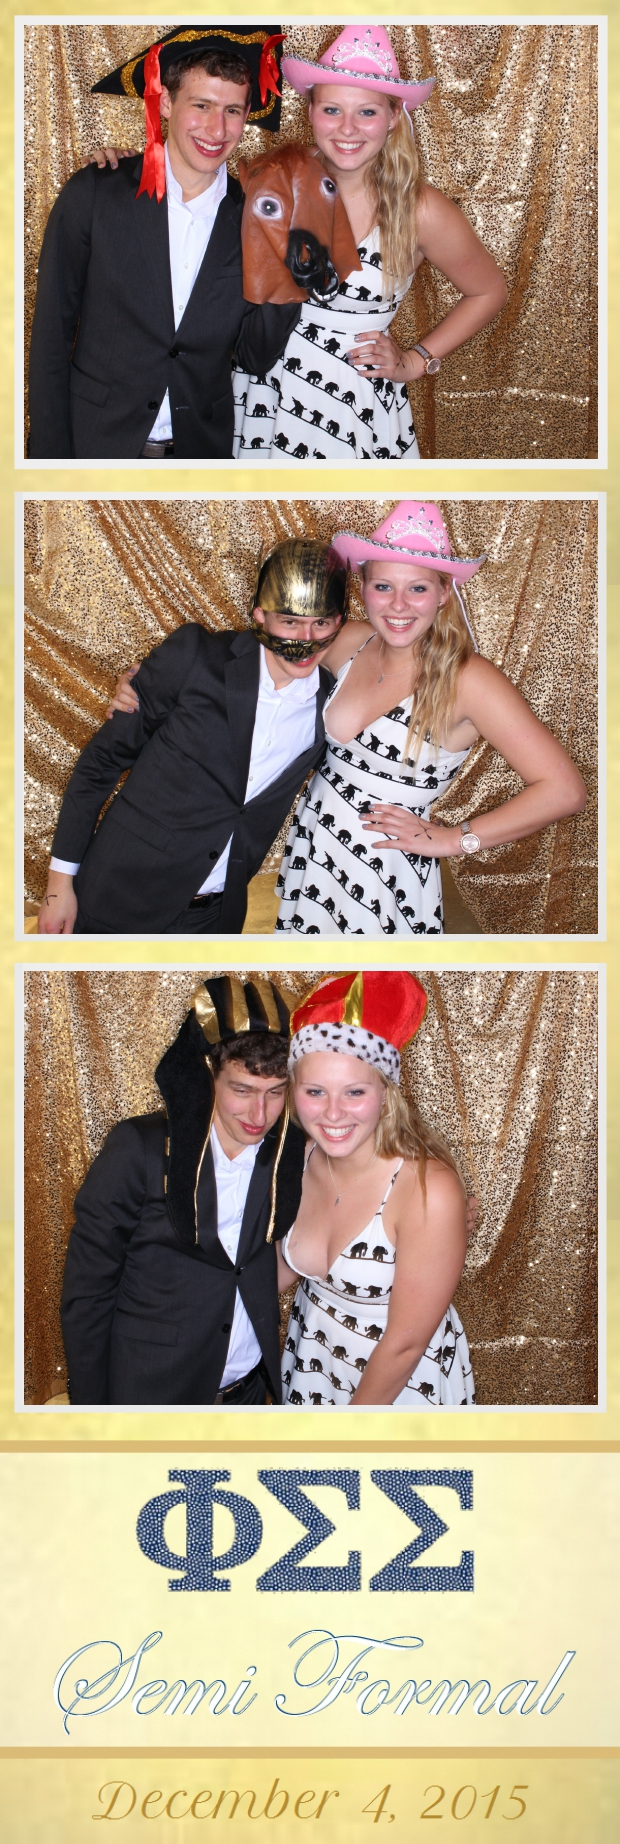 Guest House Events Photo Booth Phi Sigma Sigma Semi Formal (21).jpg